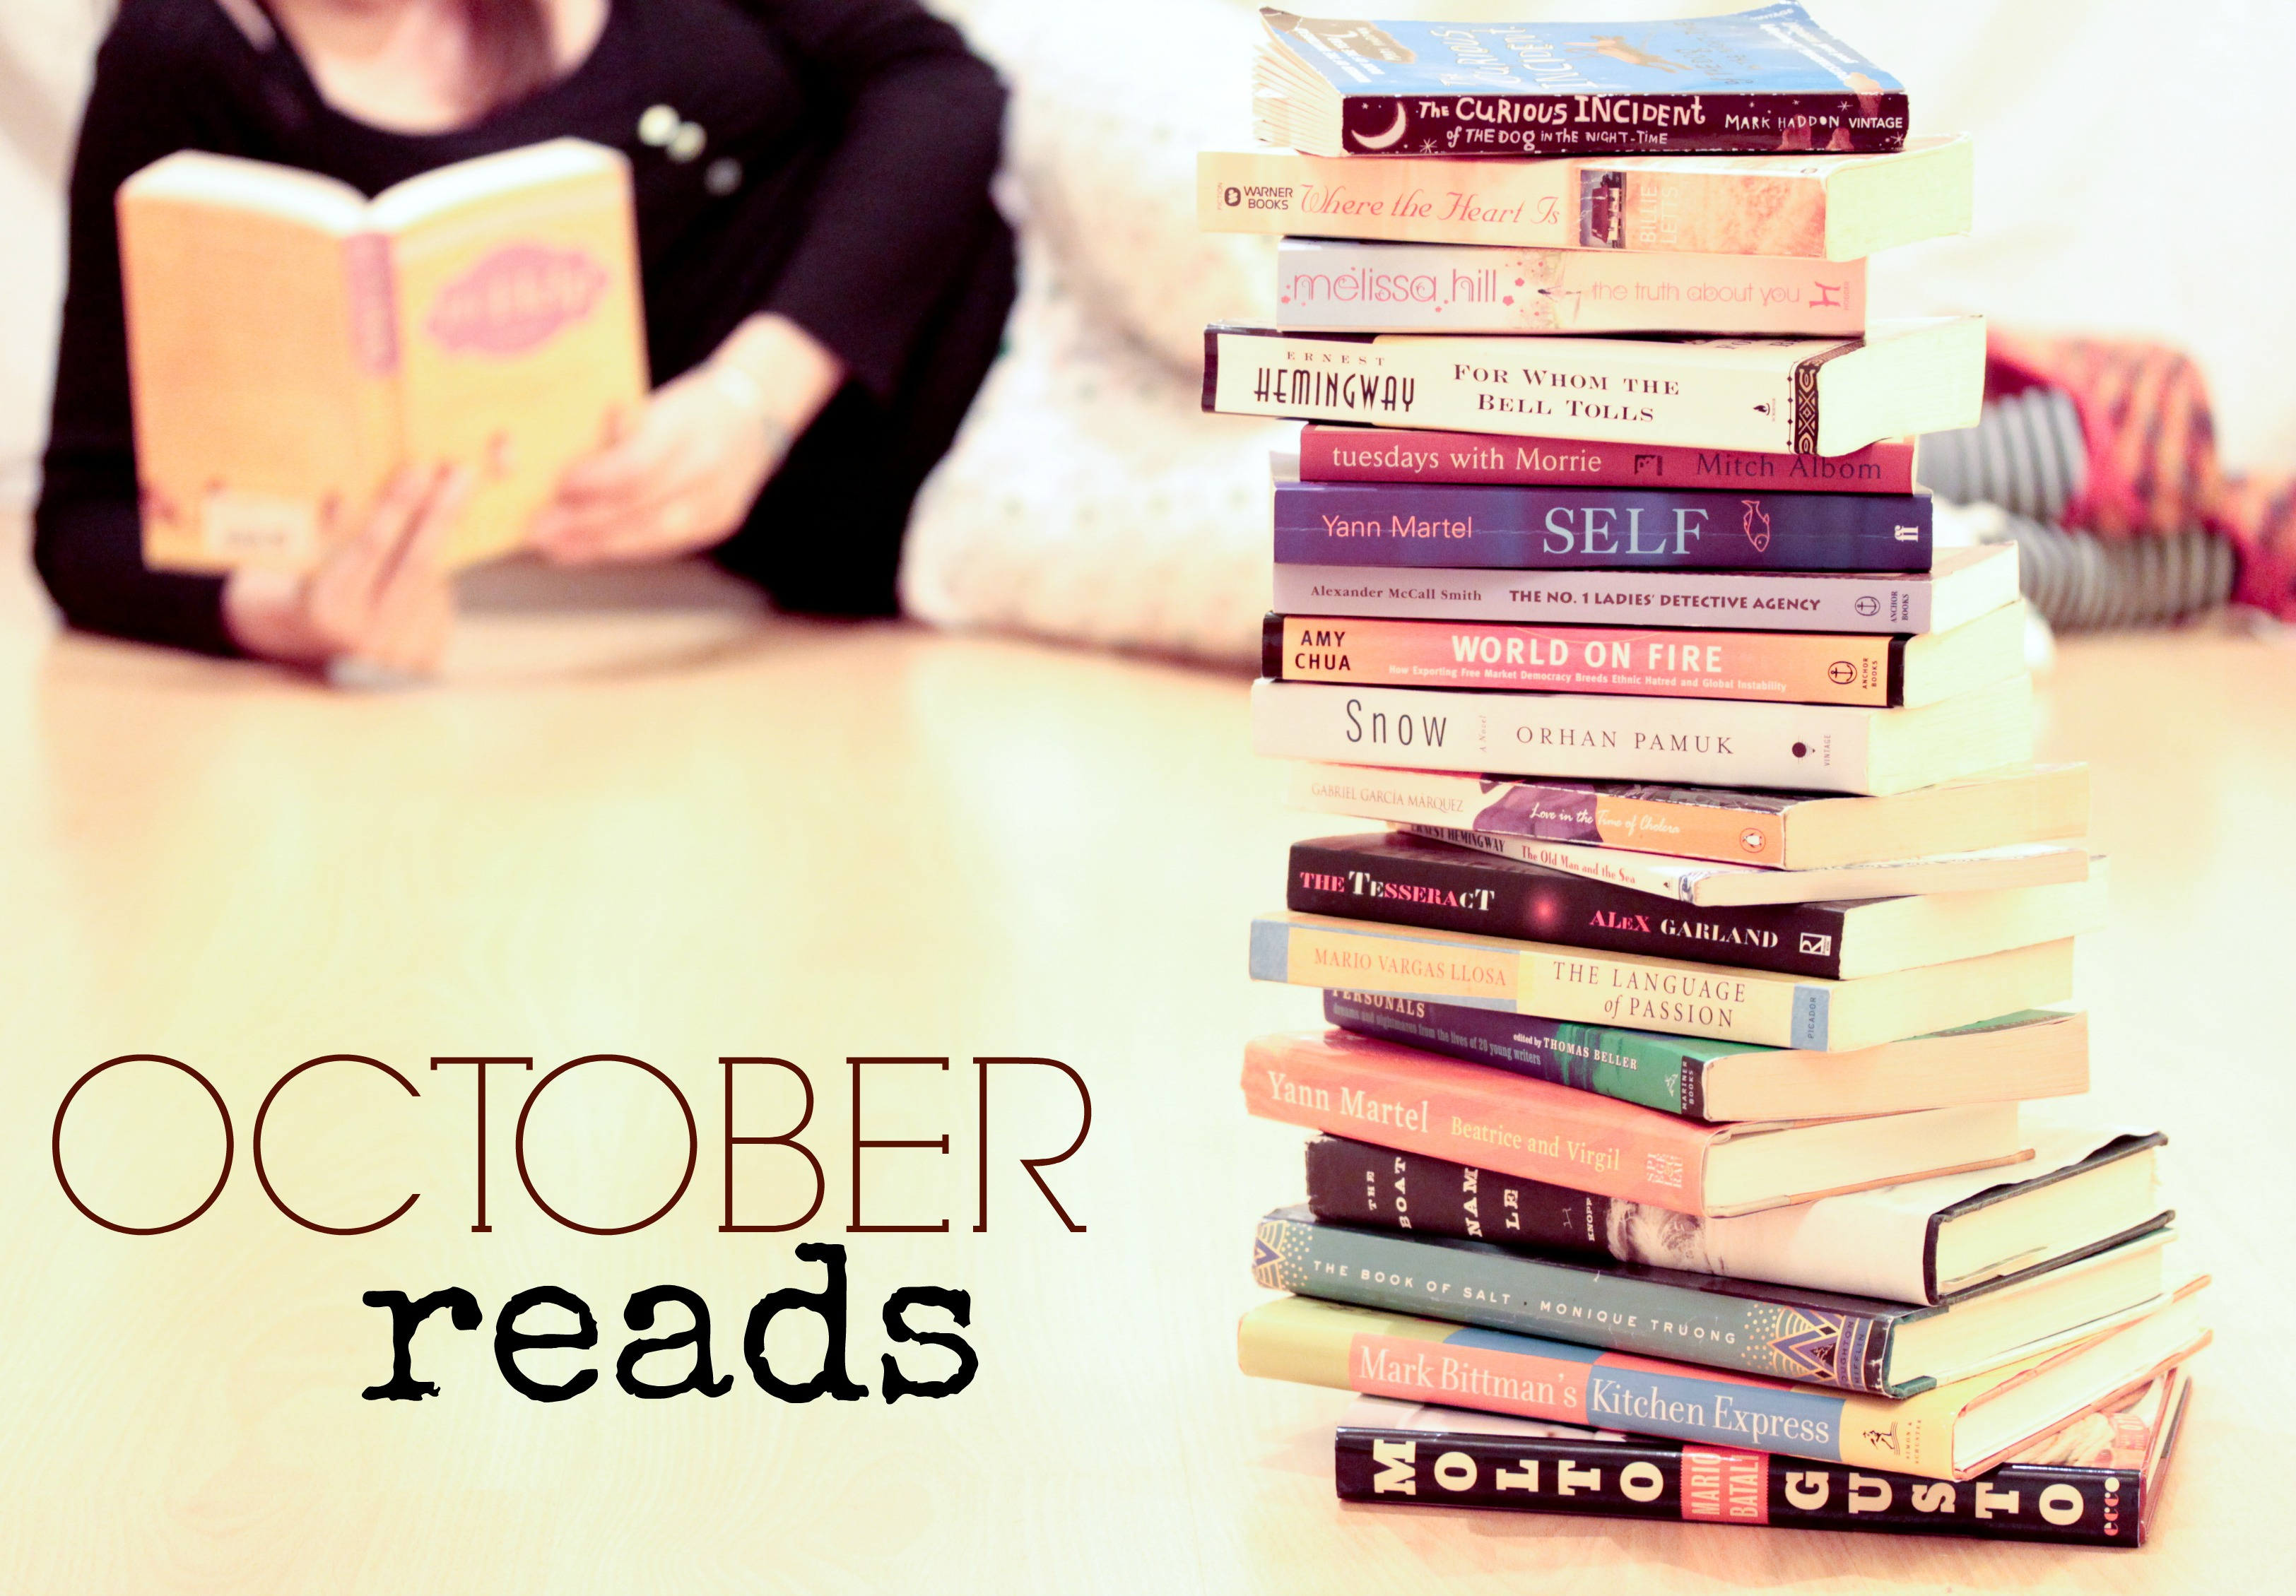 octoberreads